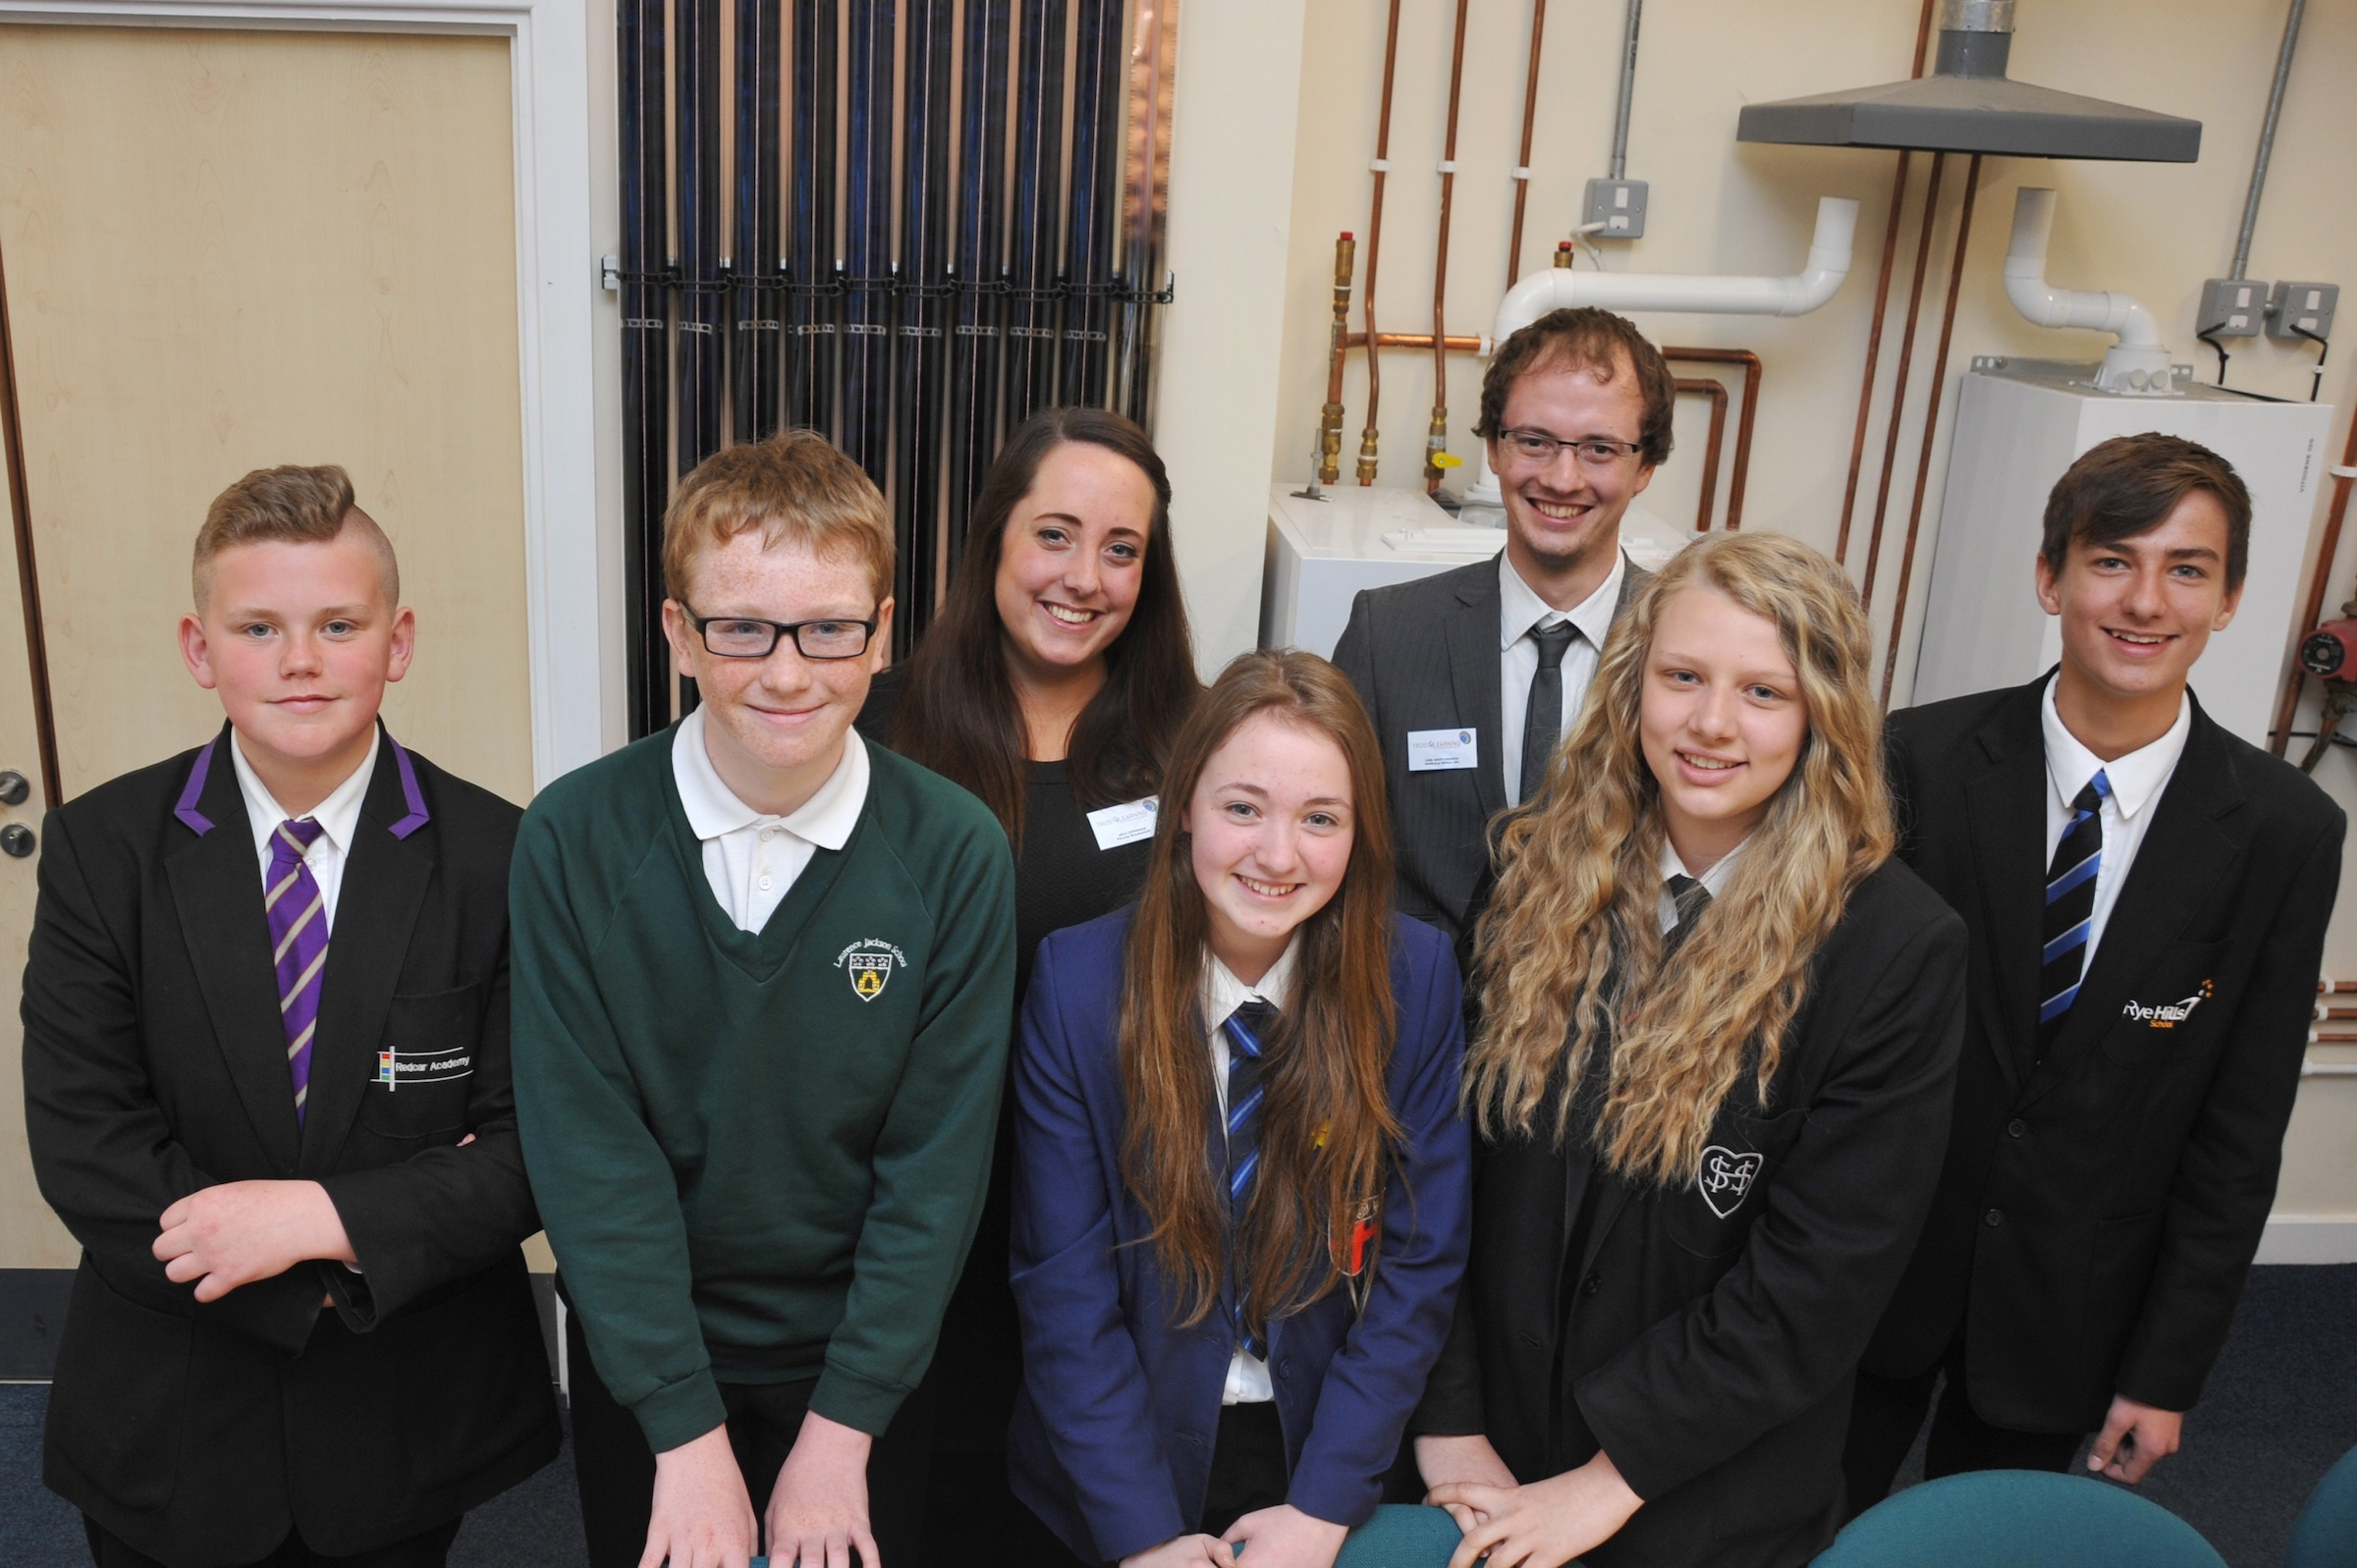 Pictured in Redcar and Cleveland College's renewables Viessmann Suite are (from left) Thomas Burgess from Redcar Academy, Euan Martin from Laurence Jackson School, Leila Tavendale from Parsons Brinkerhoff, Olivia Horne from